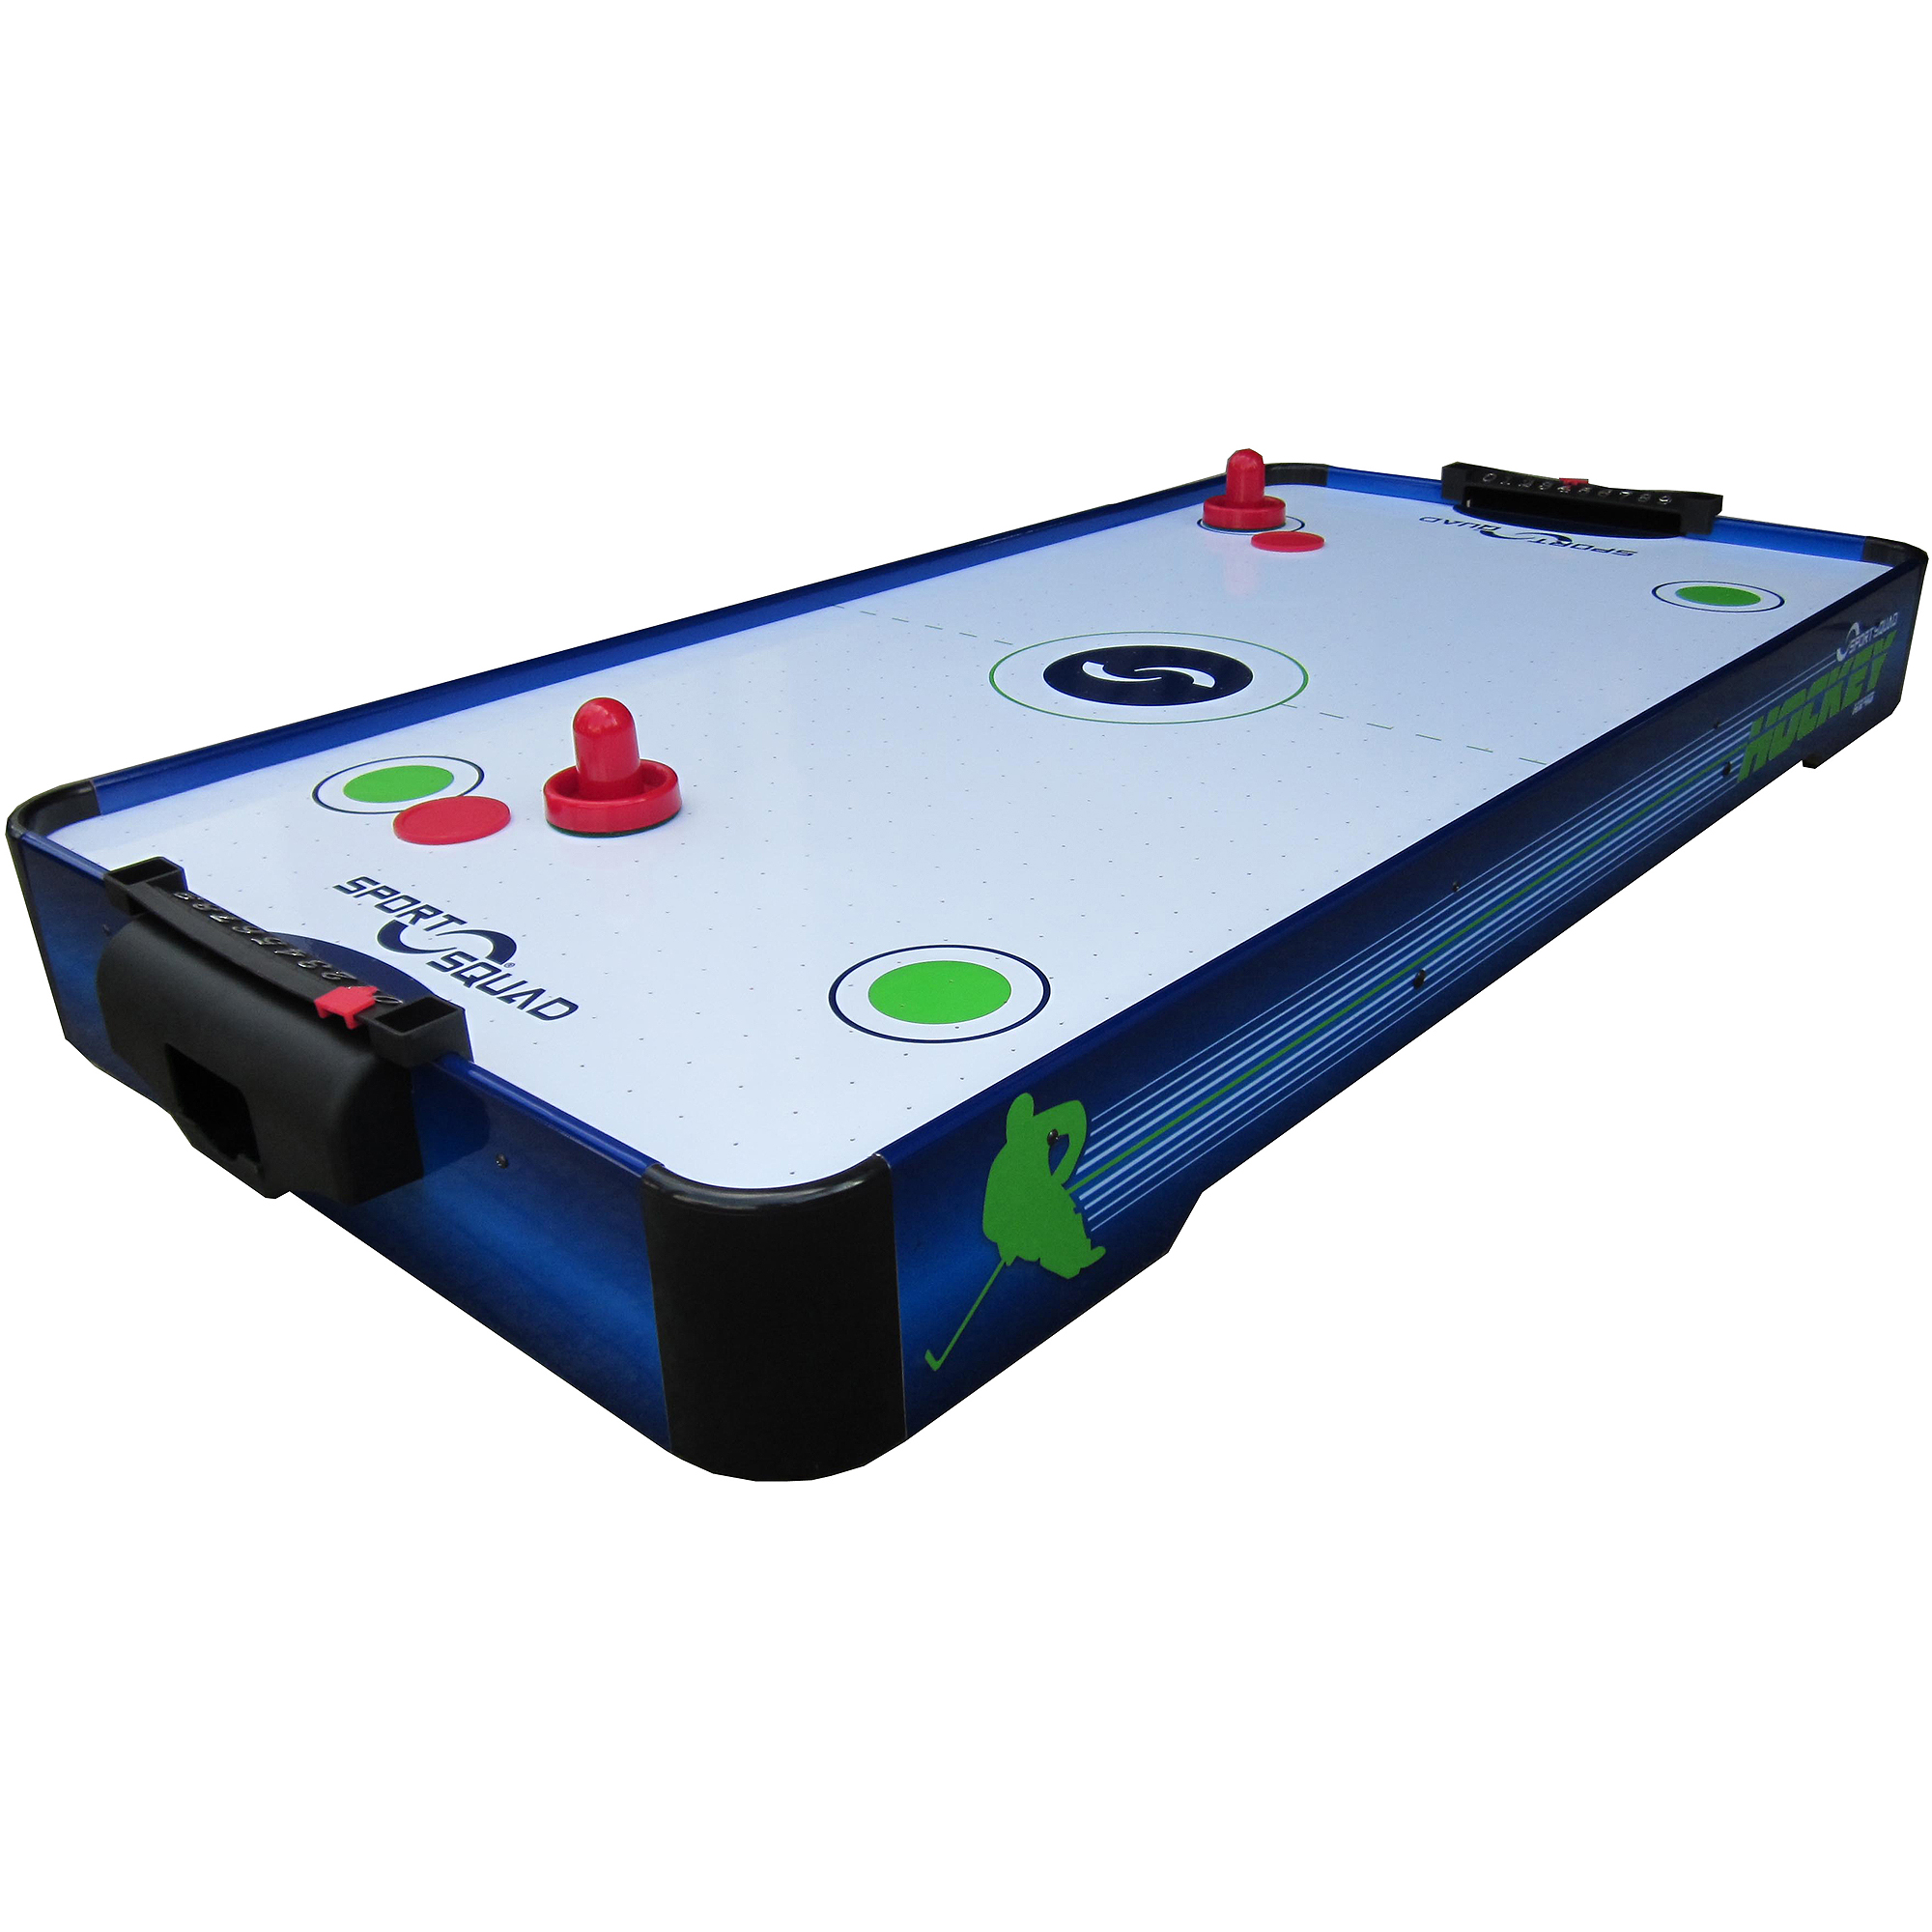 Nhl 54 Inch Adjust And Air Powered Hover Hockey Table Com